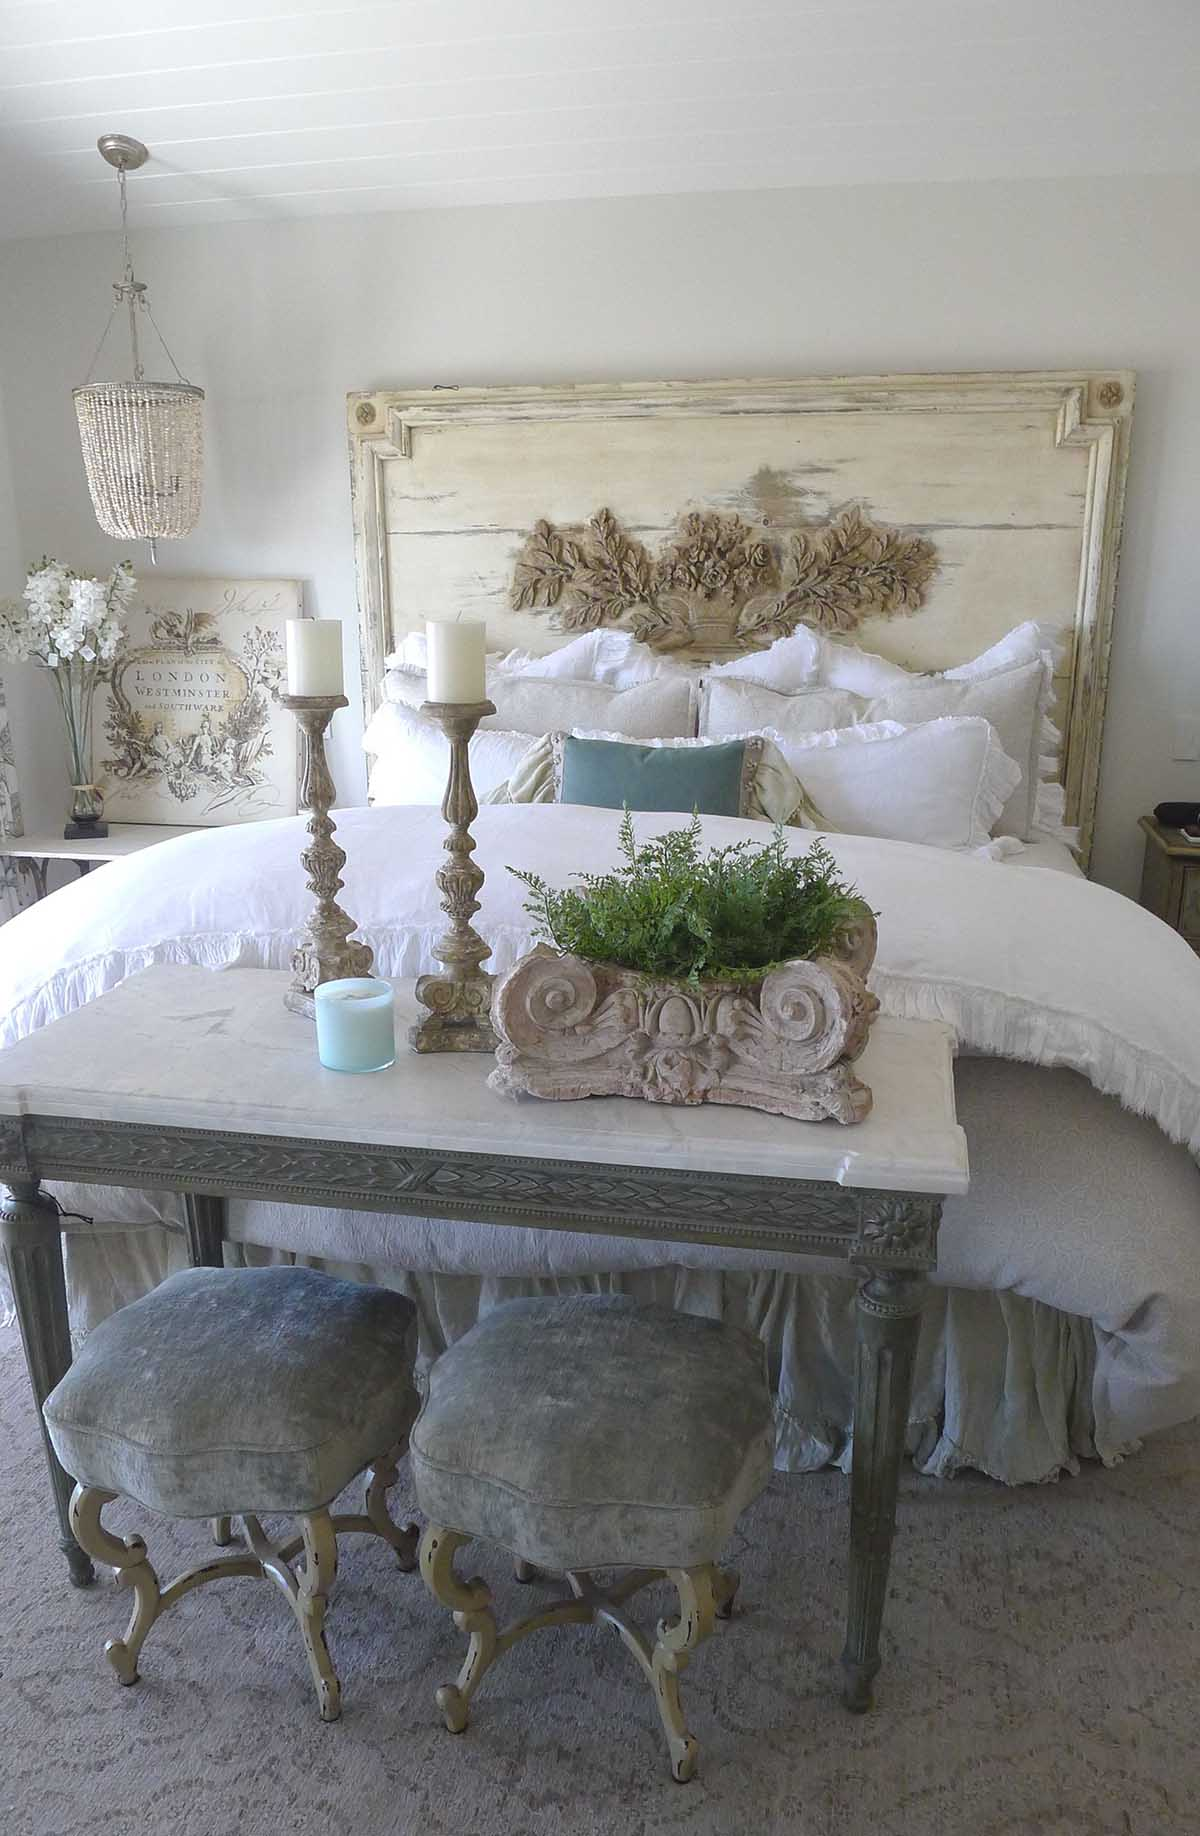 Ornamented Off-White Headboard with Luxurious Linens